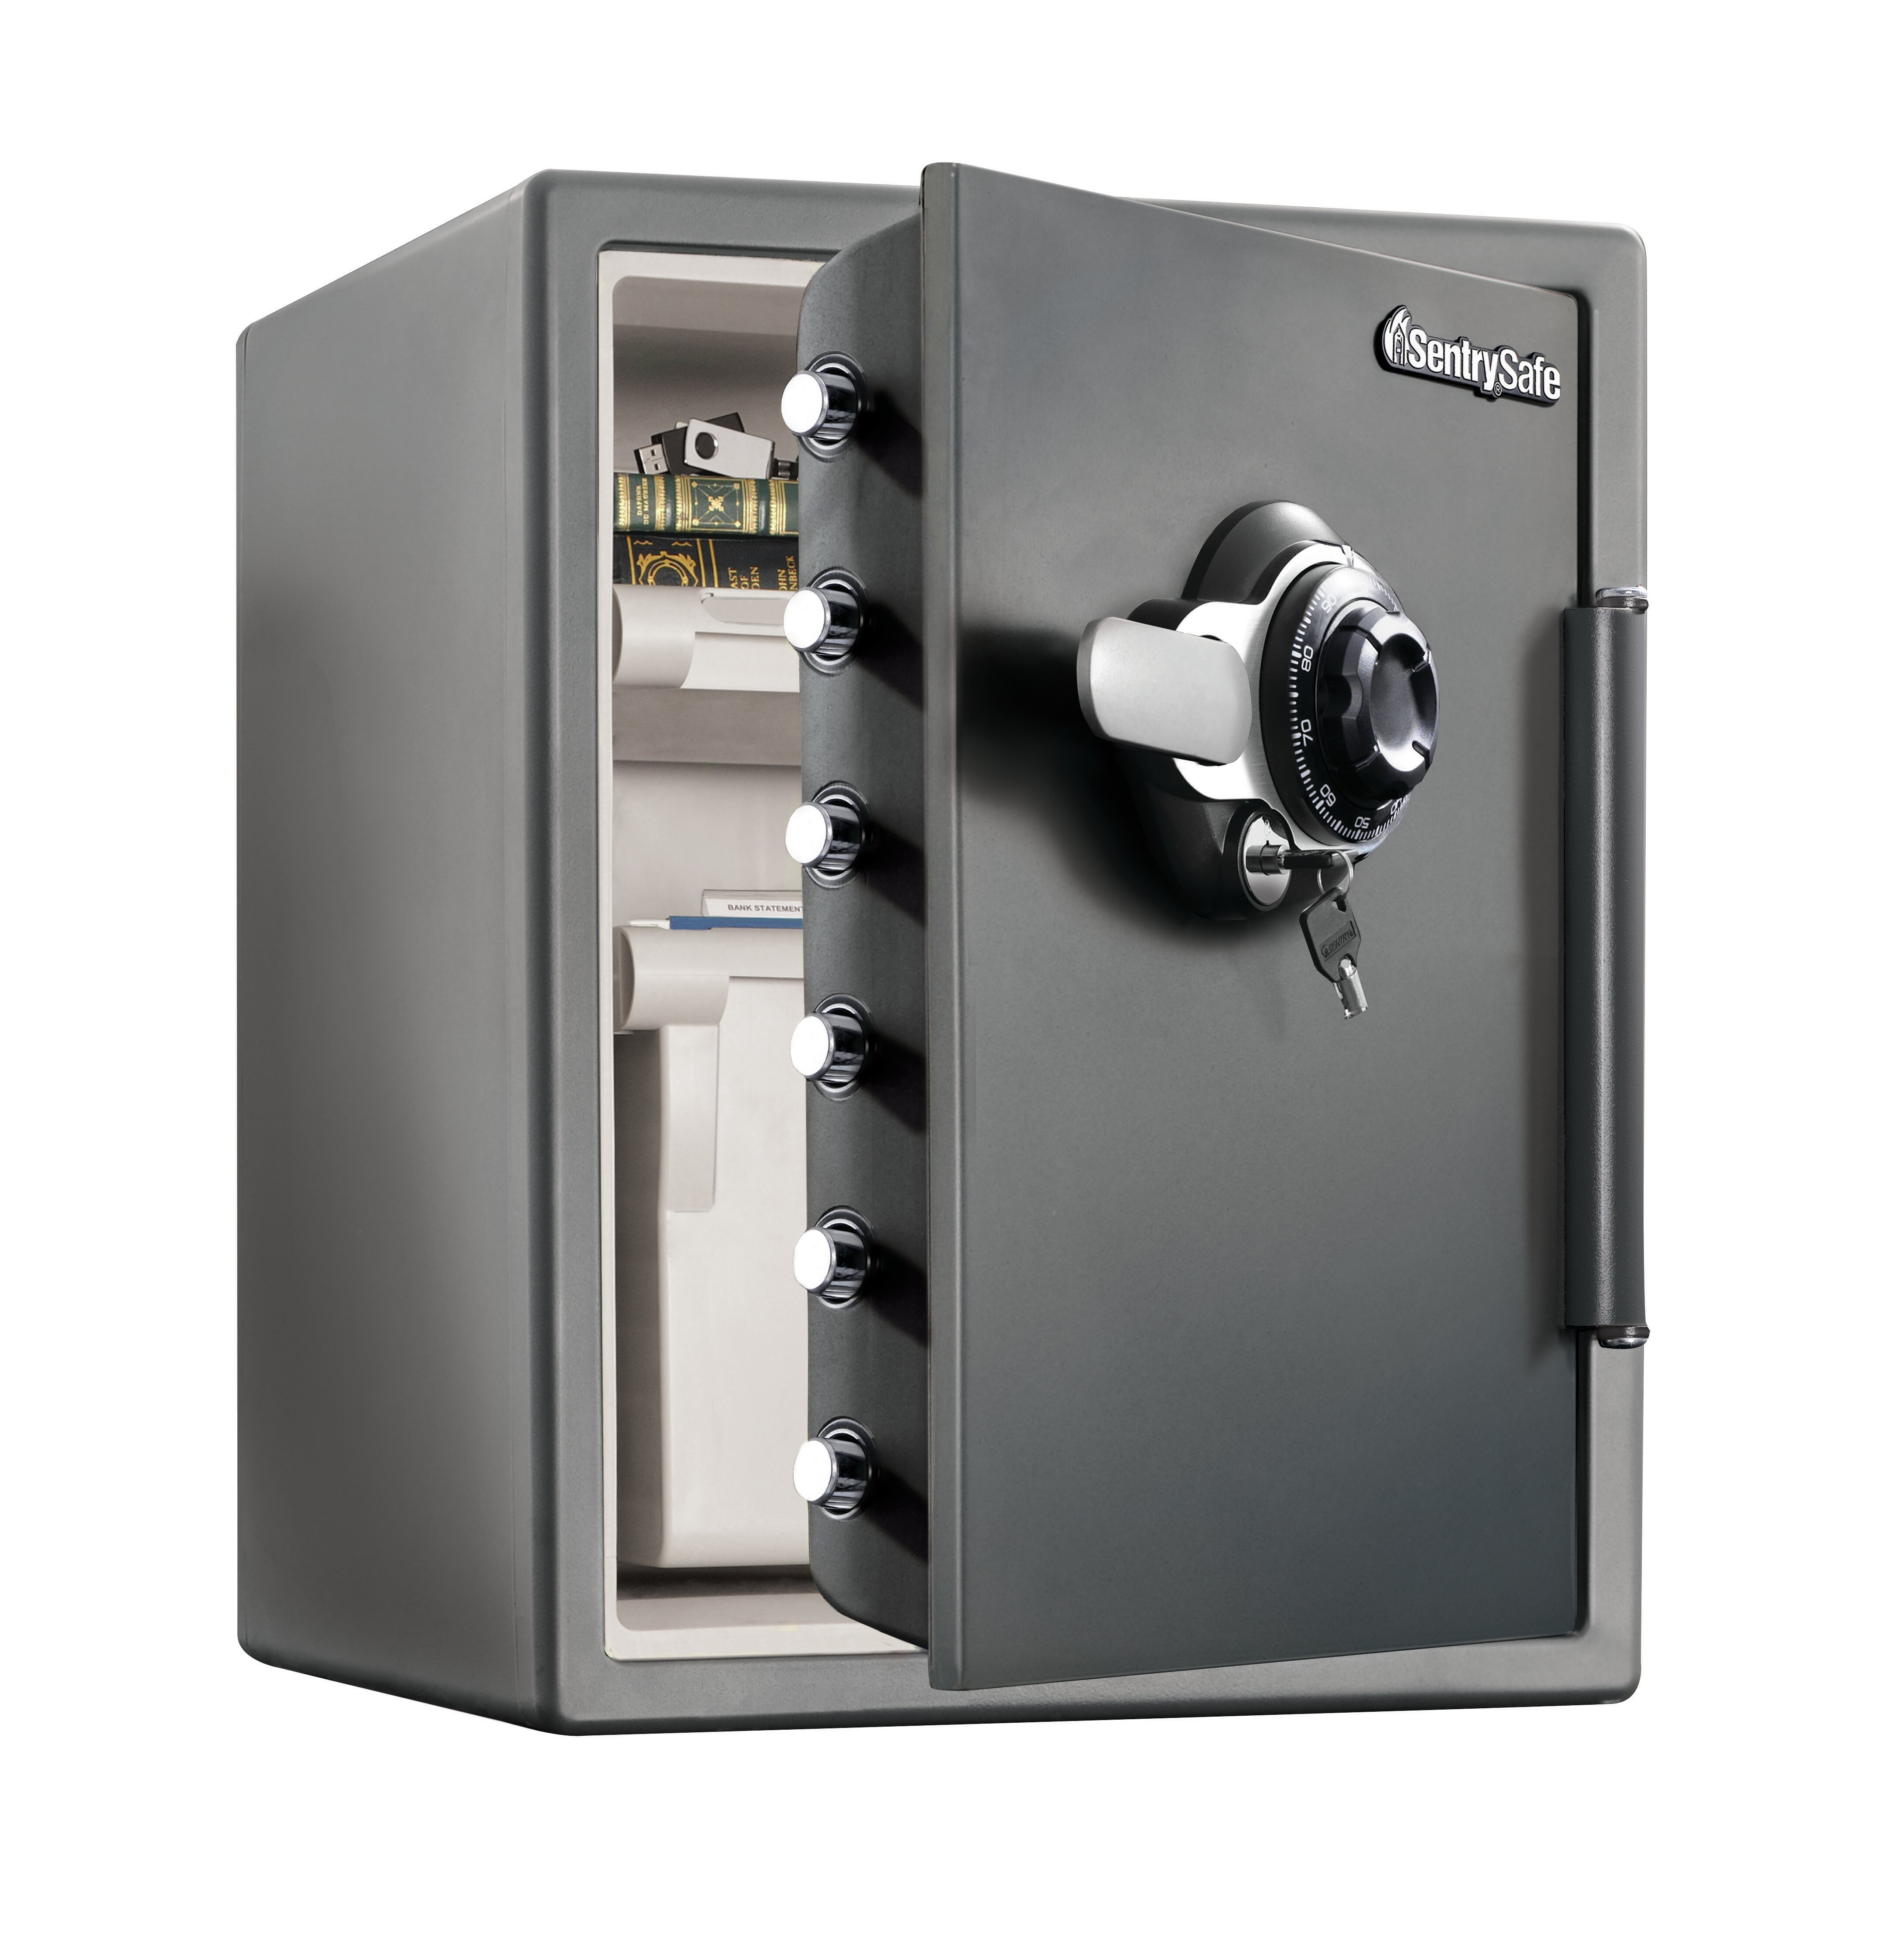 Sentrysafe Water Resistant Combination File Safe With Dial